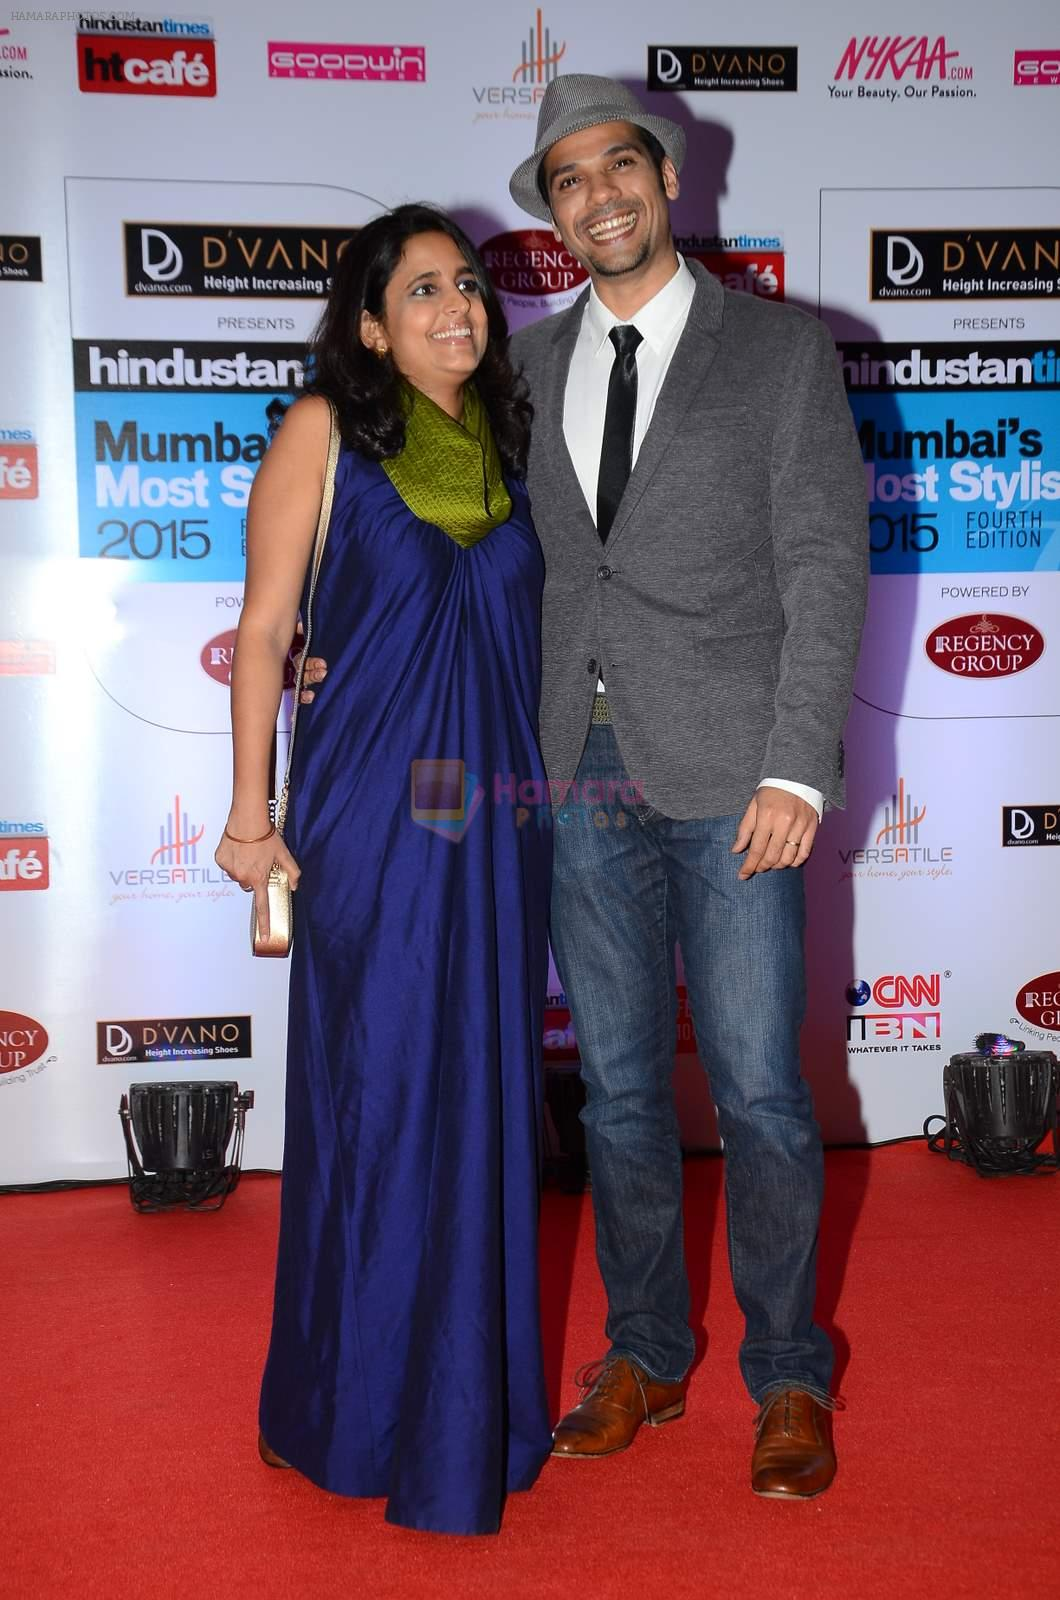 Neil Bhoopalam at HT Mumbai's Most Stylish Awards 2015 in Mumbai on 26th March 2015